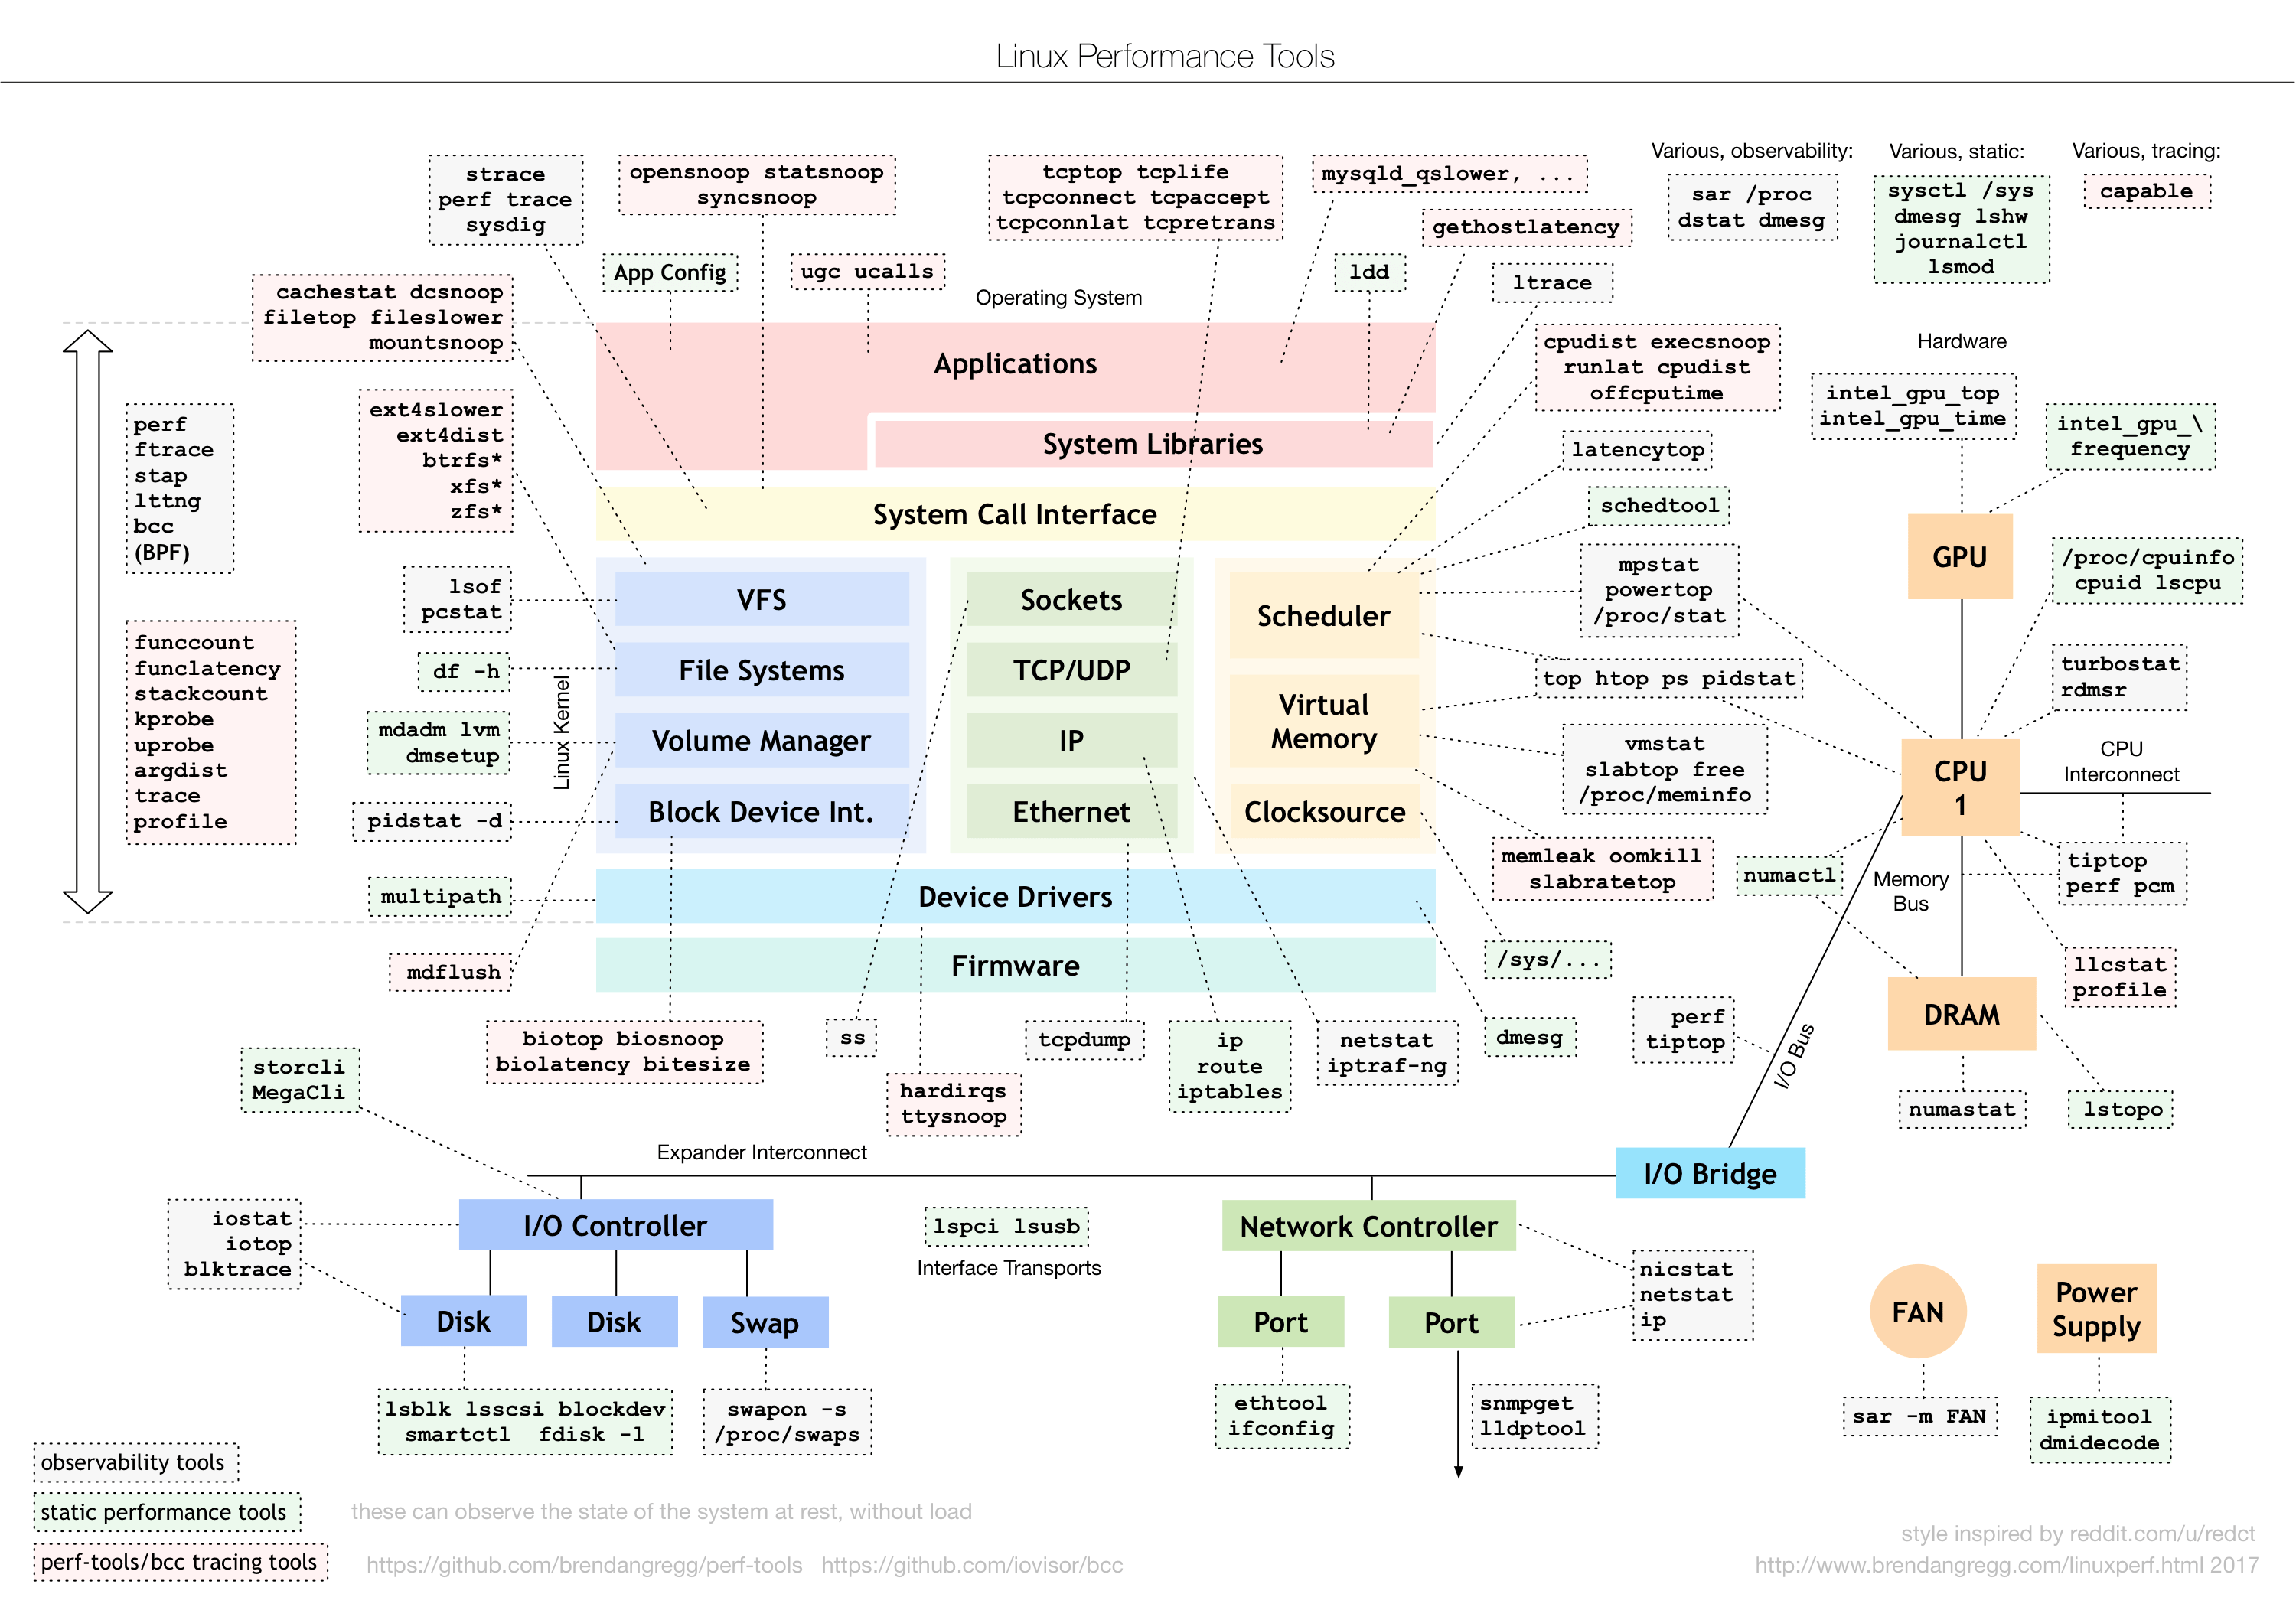 Linux Performance Tools  Diagram by Brendan Gregg updated 2016  linux